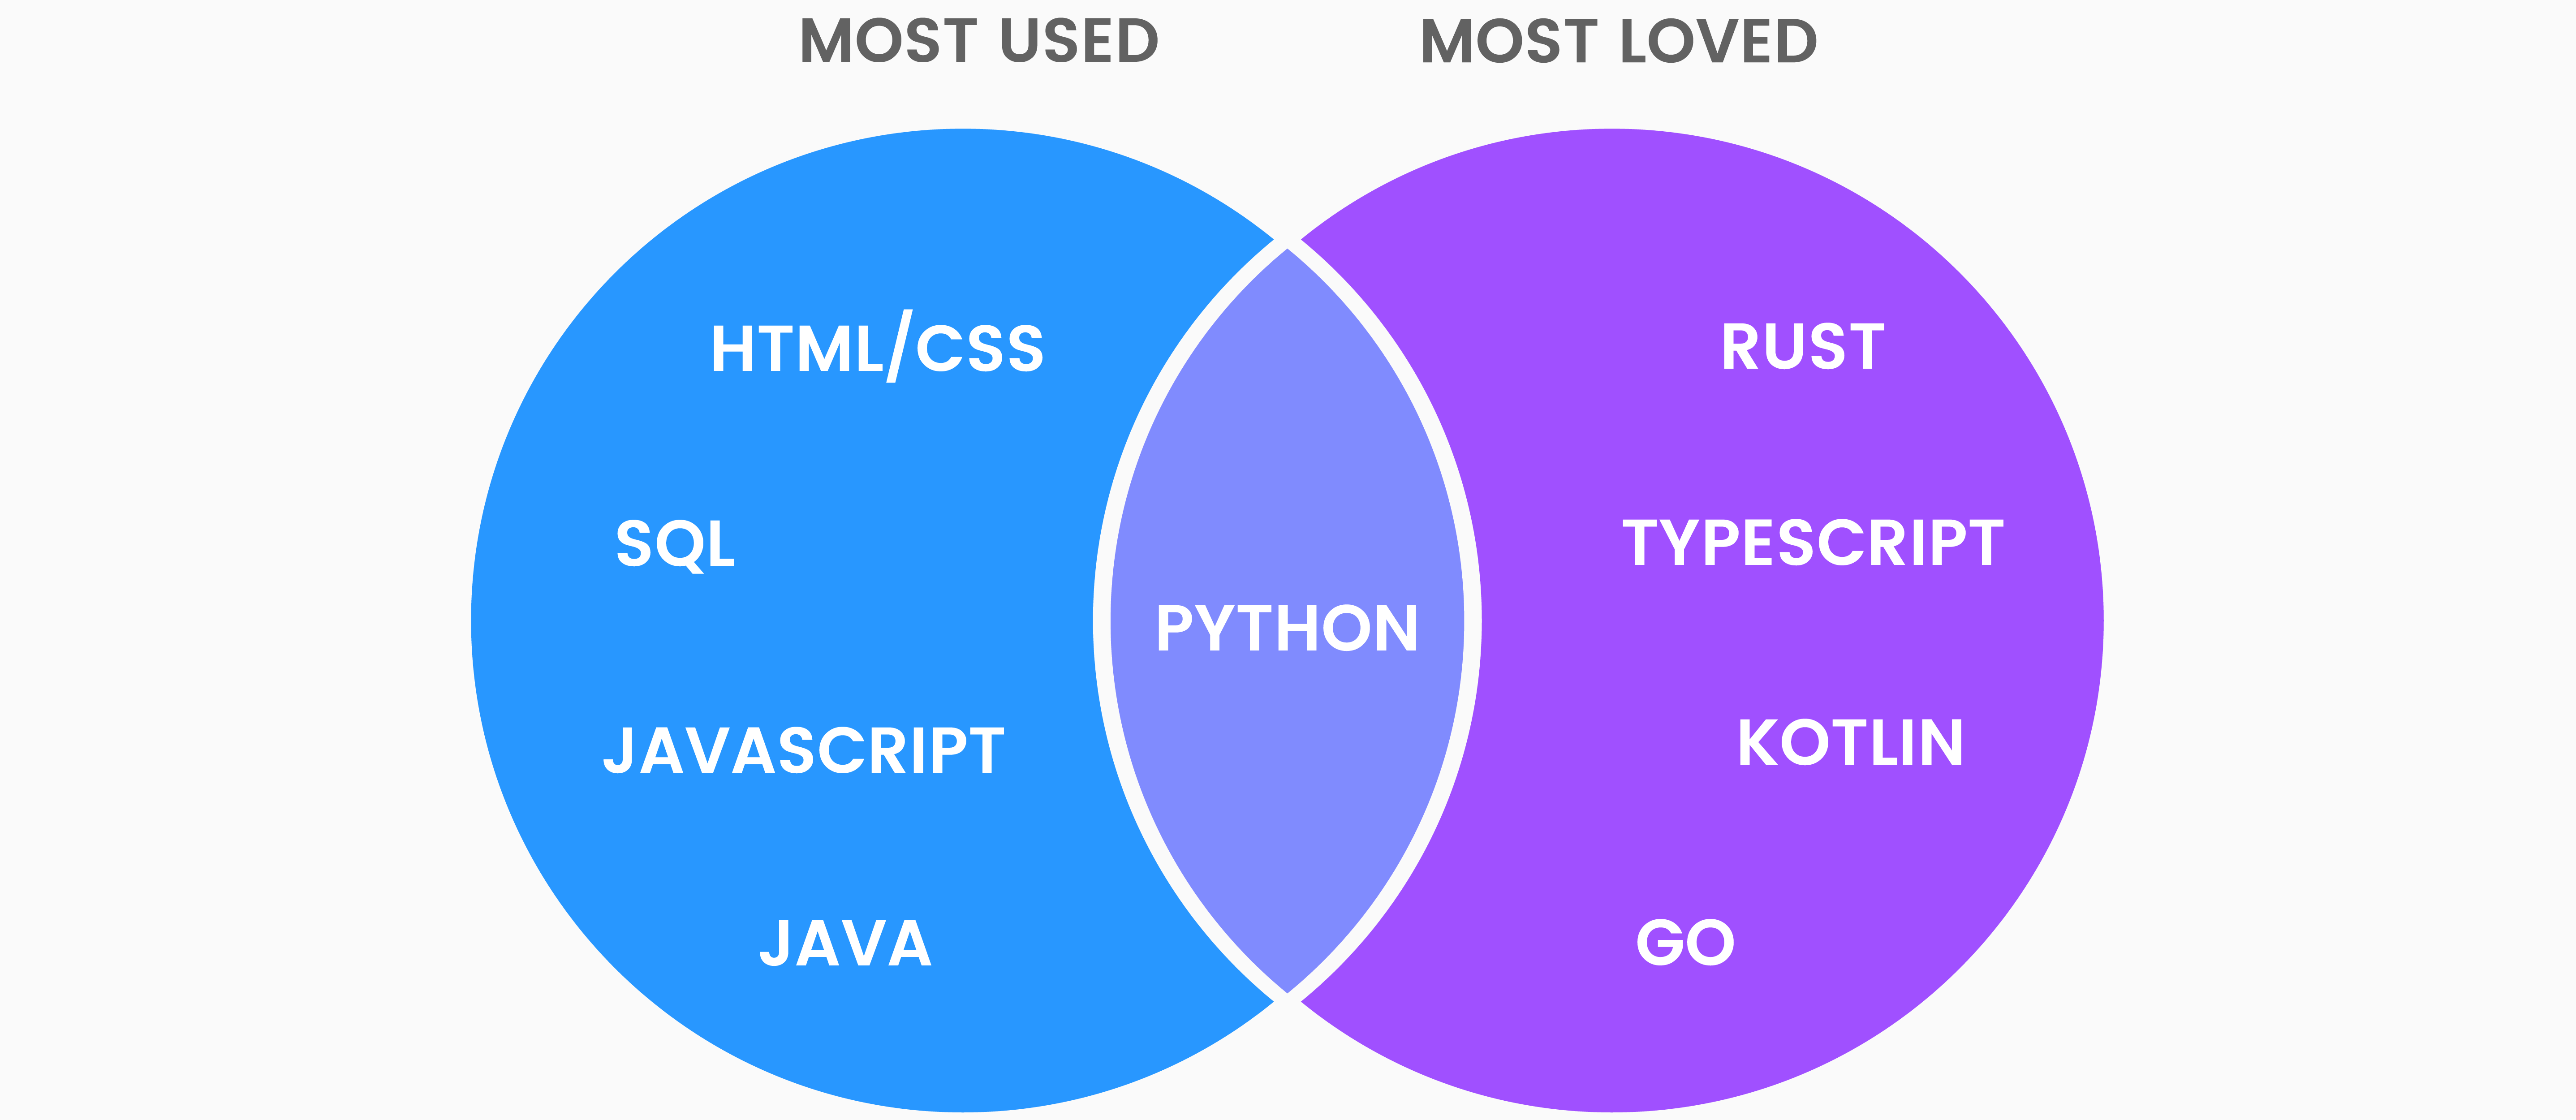 Most Loved, Most Used Languages, Venn Diagram